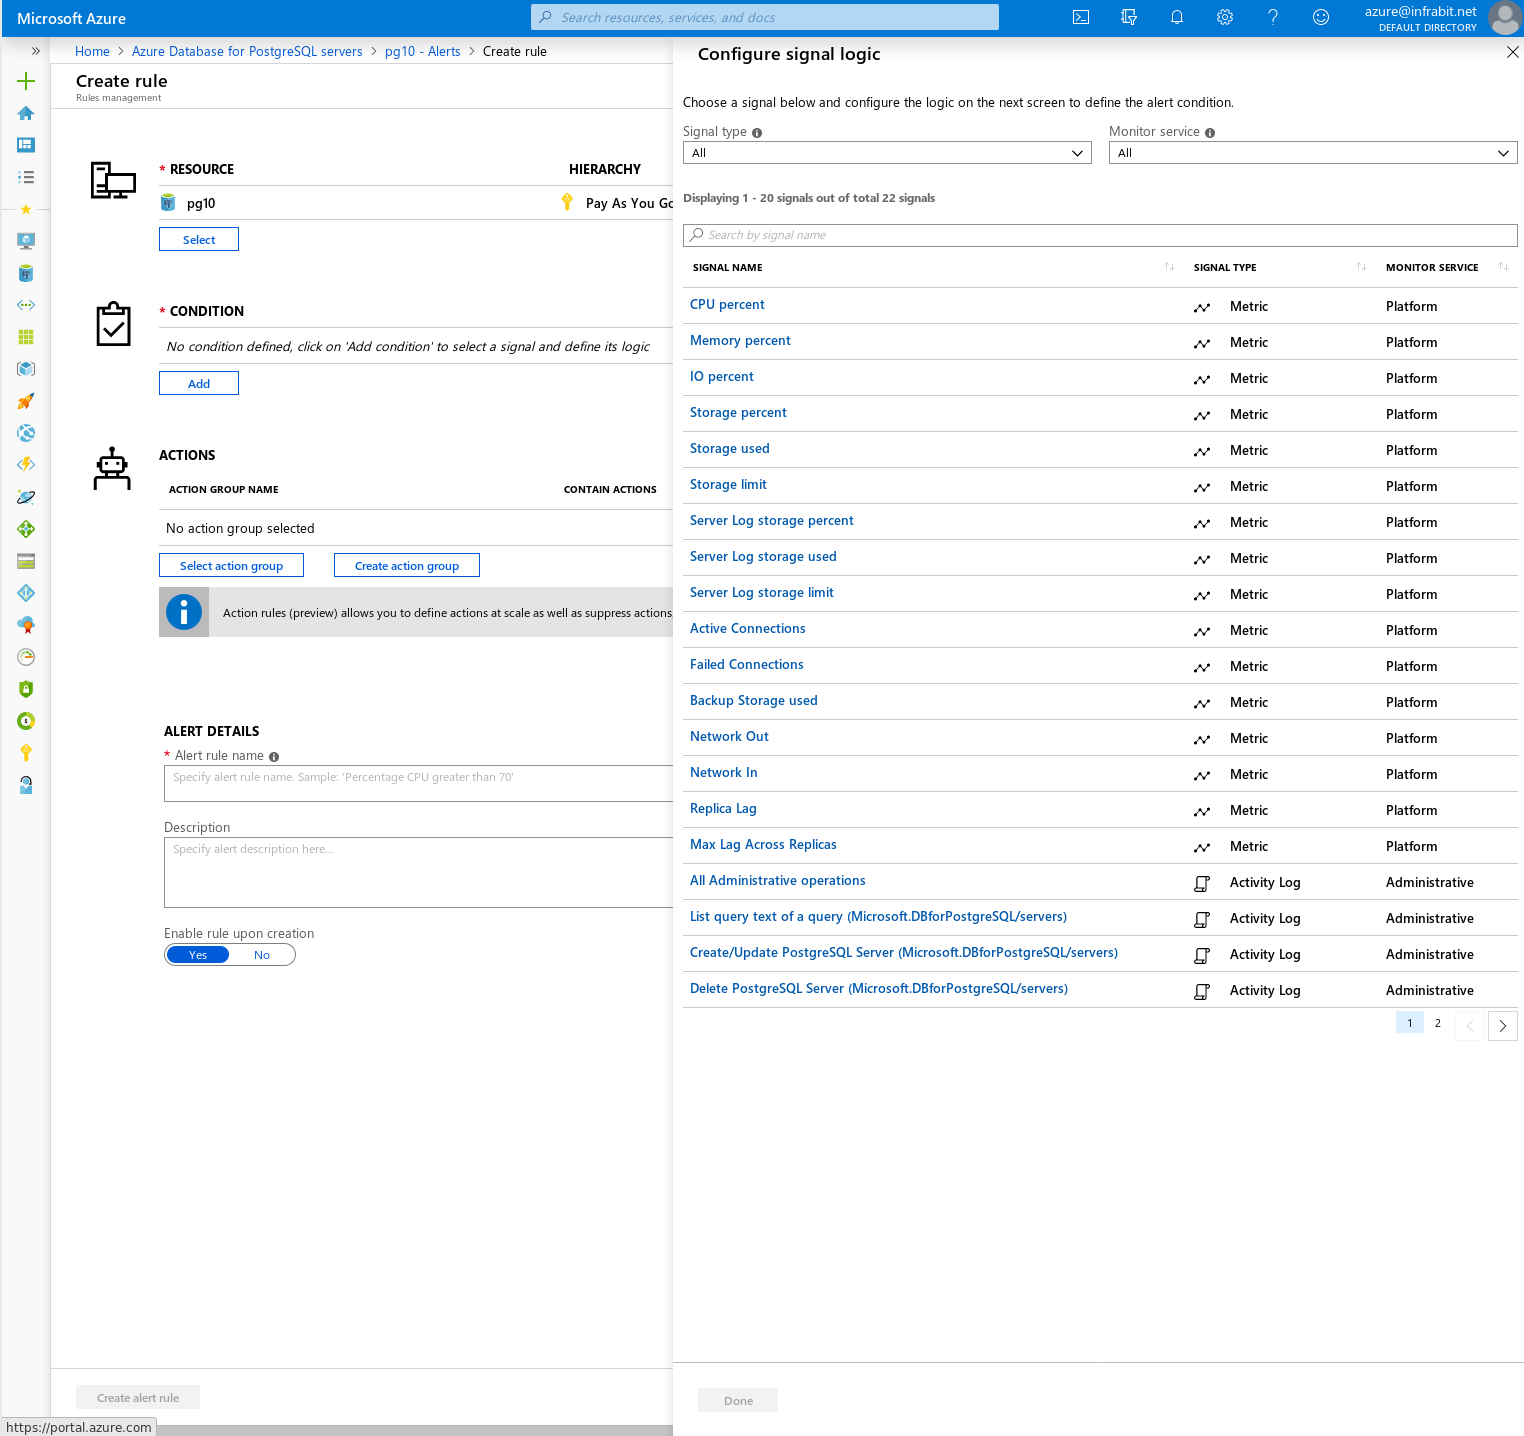 Azure Database for PostgreSQL: Single Server --- Available Alerts